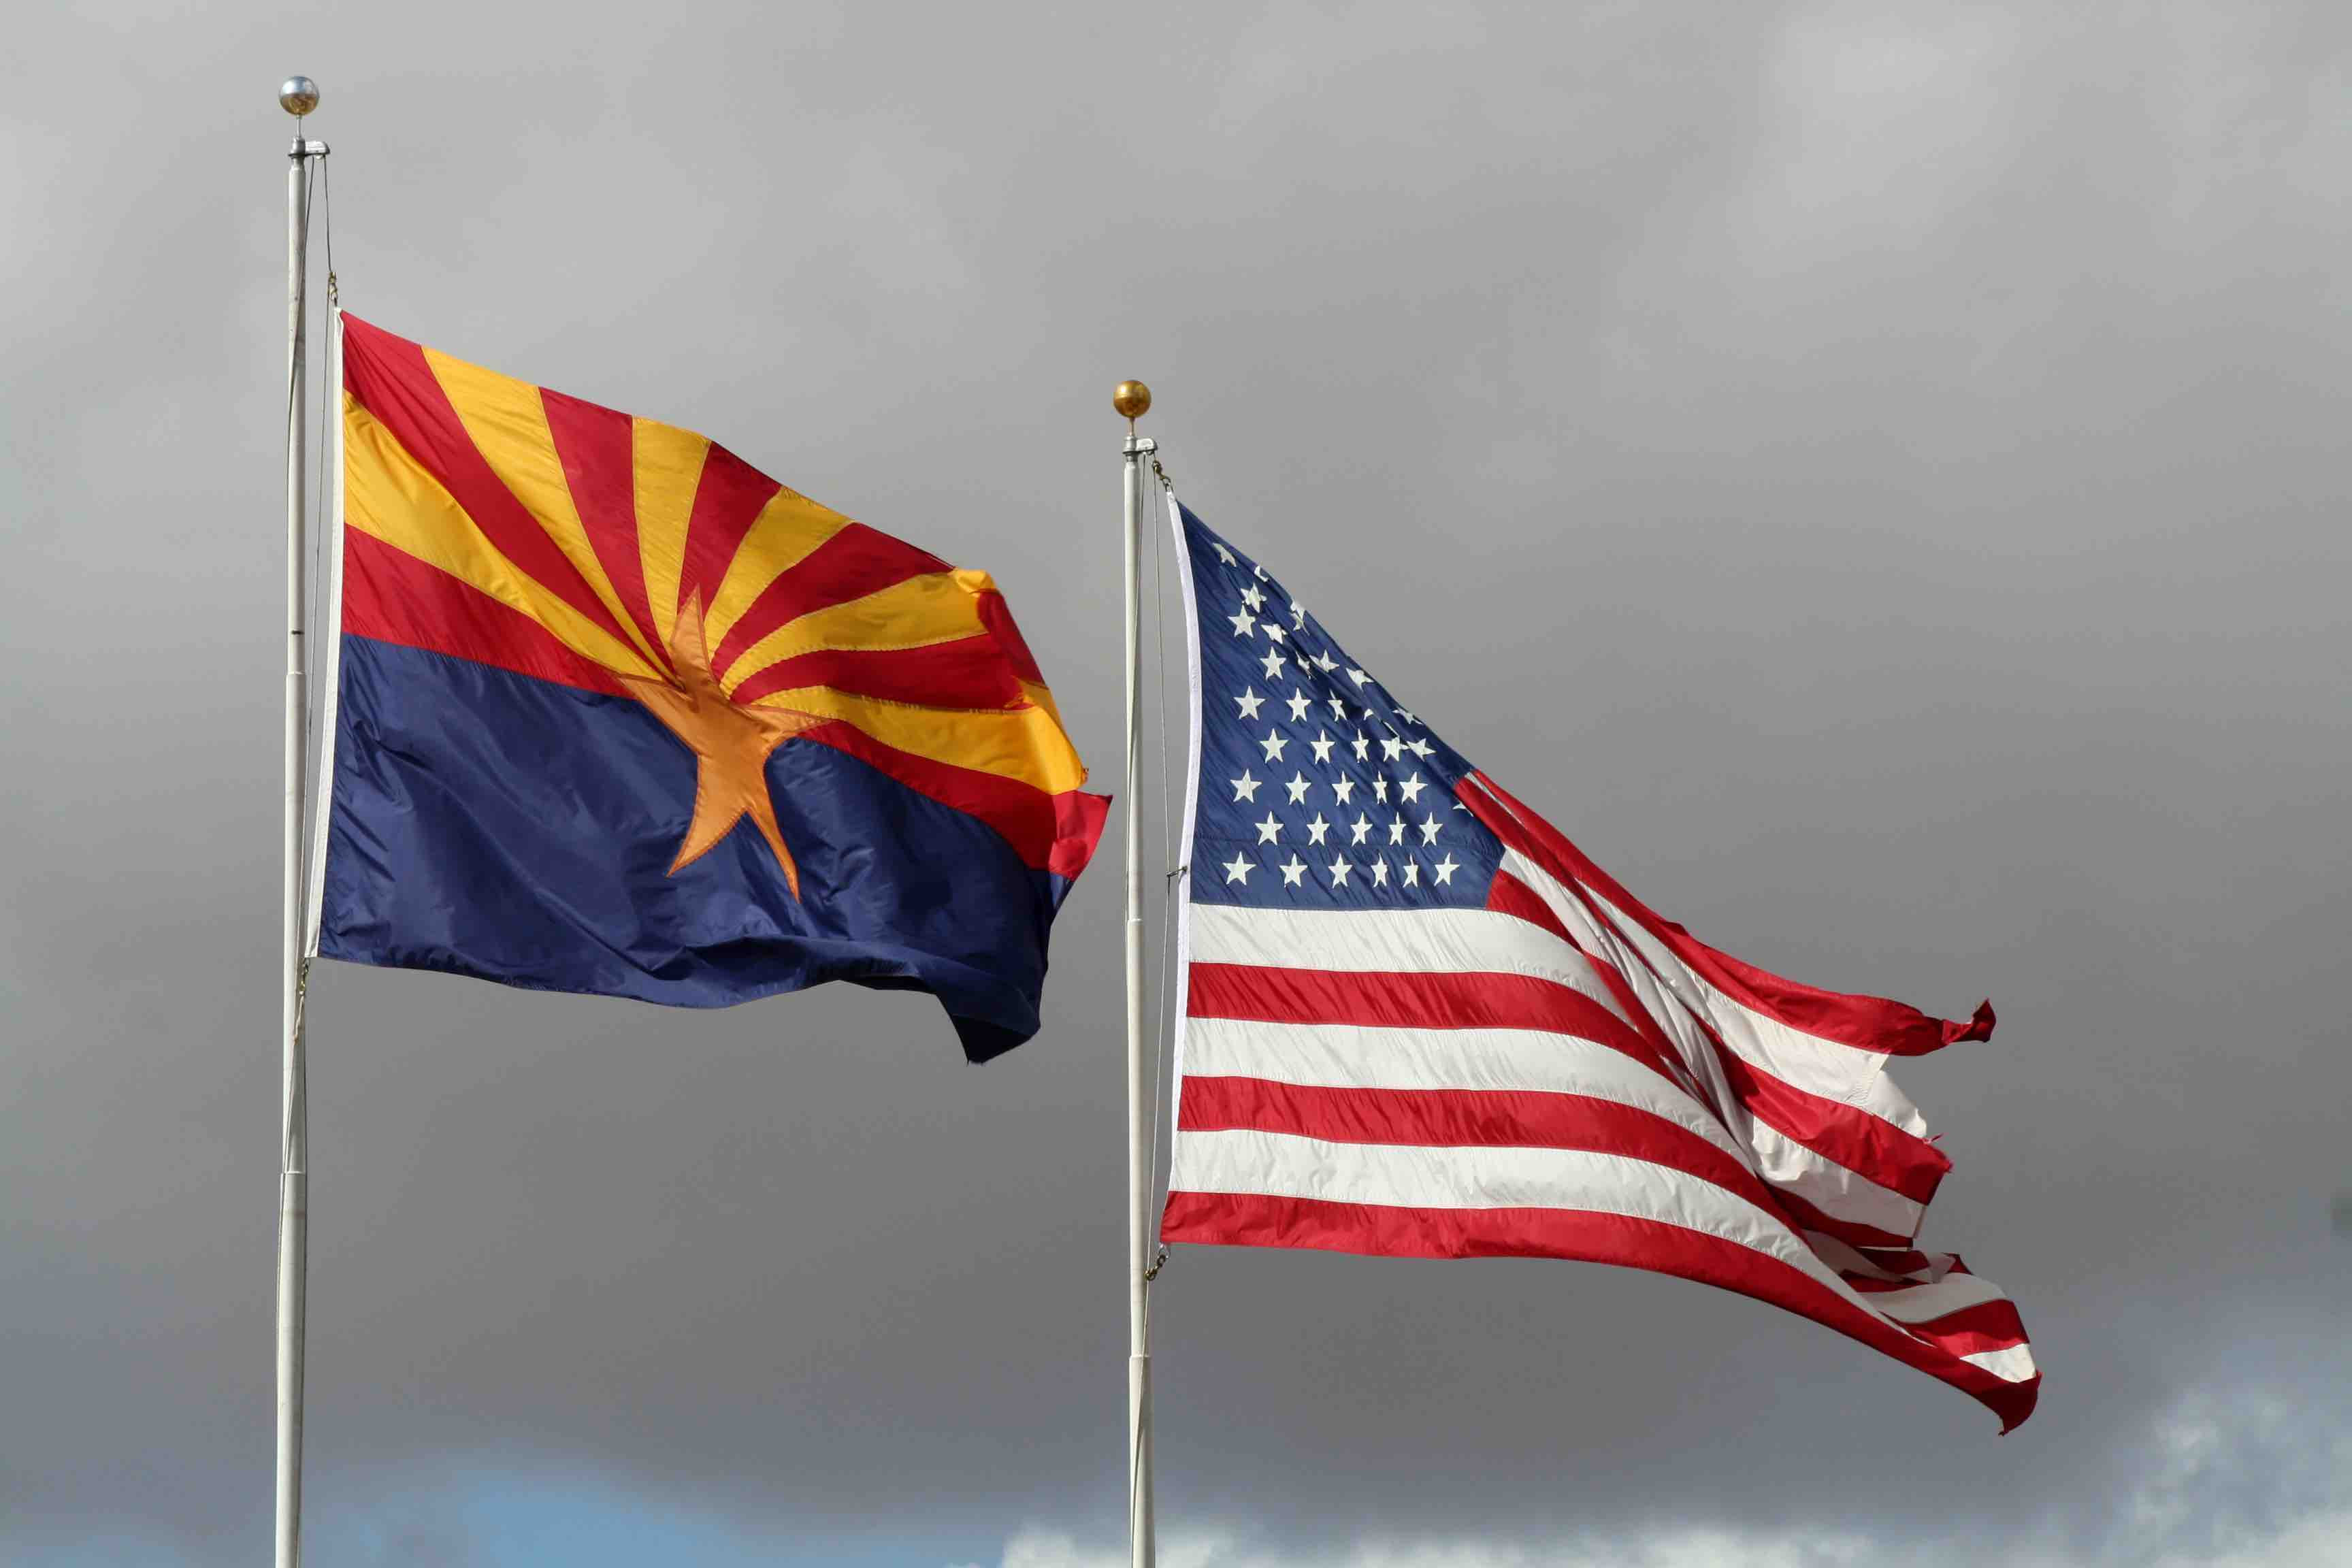 White Woman Files Lawsuit Questioning Citizenship of Newly Elected Arizona Rep. Raquel Terán